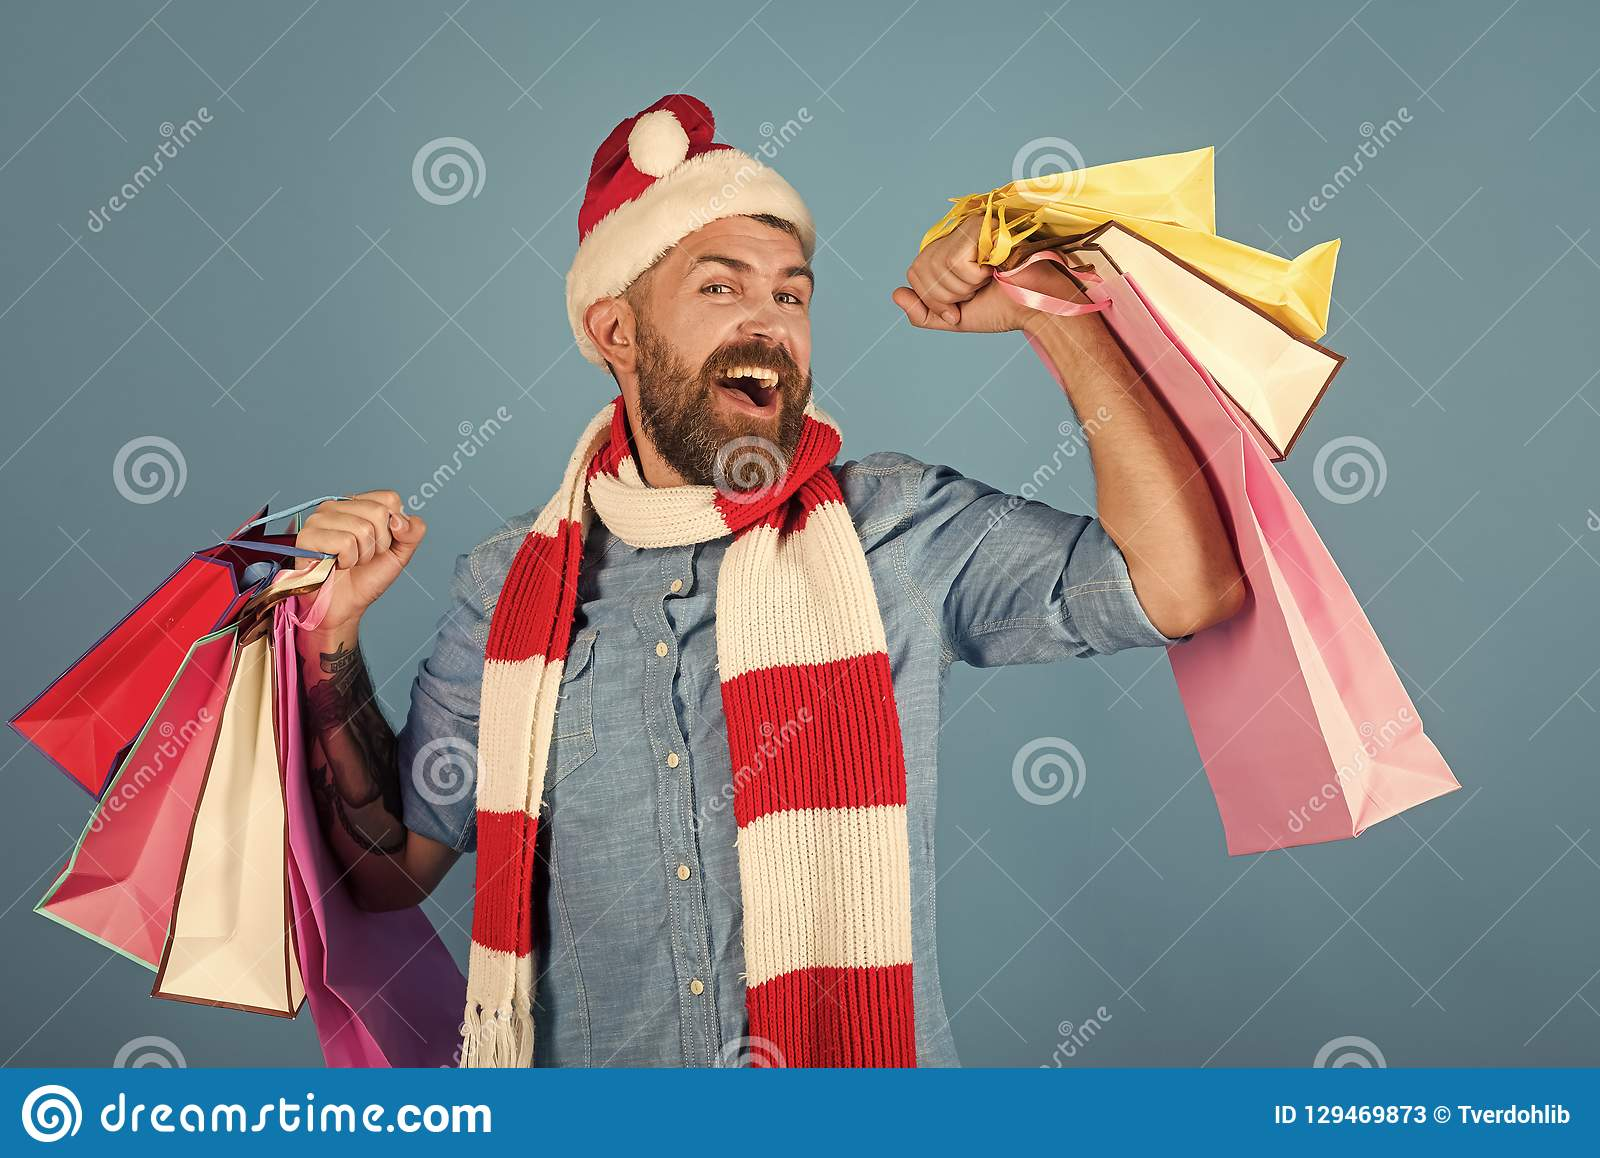 71e30d5084d3c Christmas man shopper happy smile in santa hat and scarf. Hipster hold  shopping bags on blue background. Winter holidays celebration. New year ...